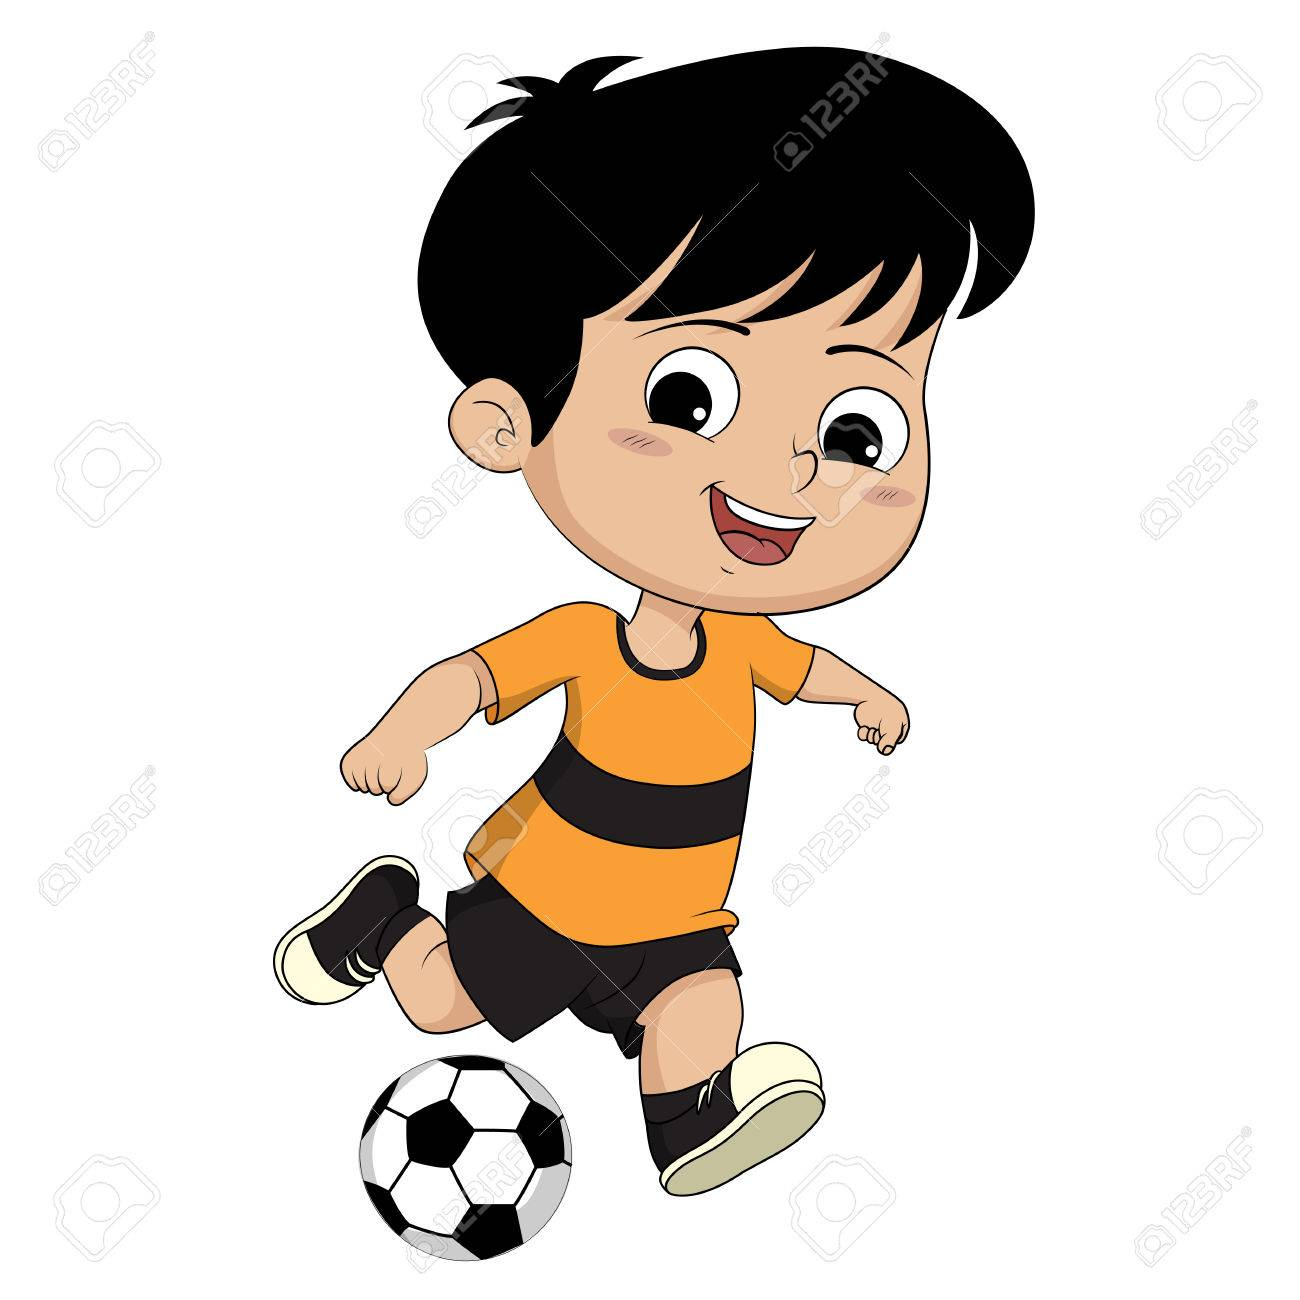 Kids Kicking Football He Is As Poor But He Loves To Play Football And Royalty Free Cliparts Vectors And Stock Illustration Image 61107975